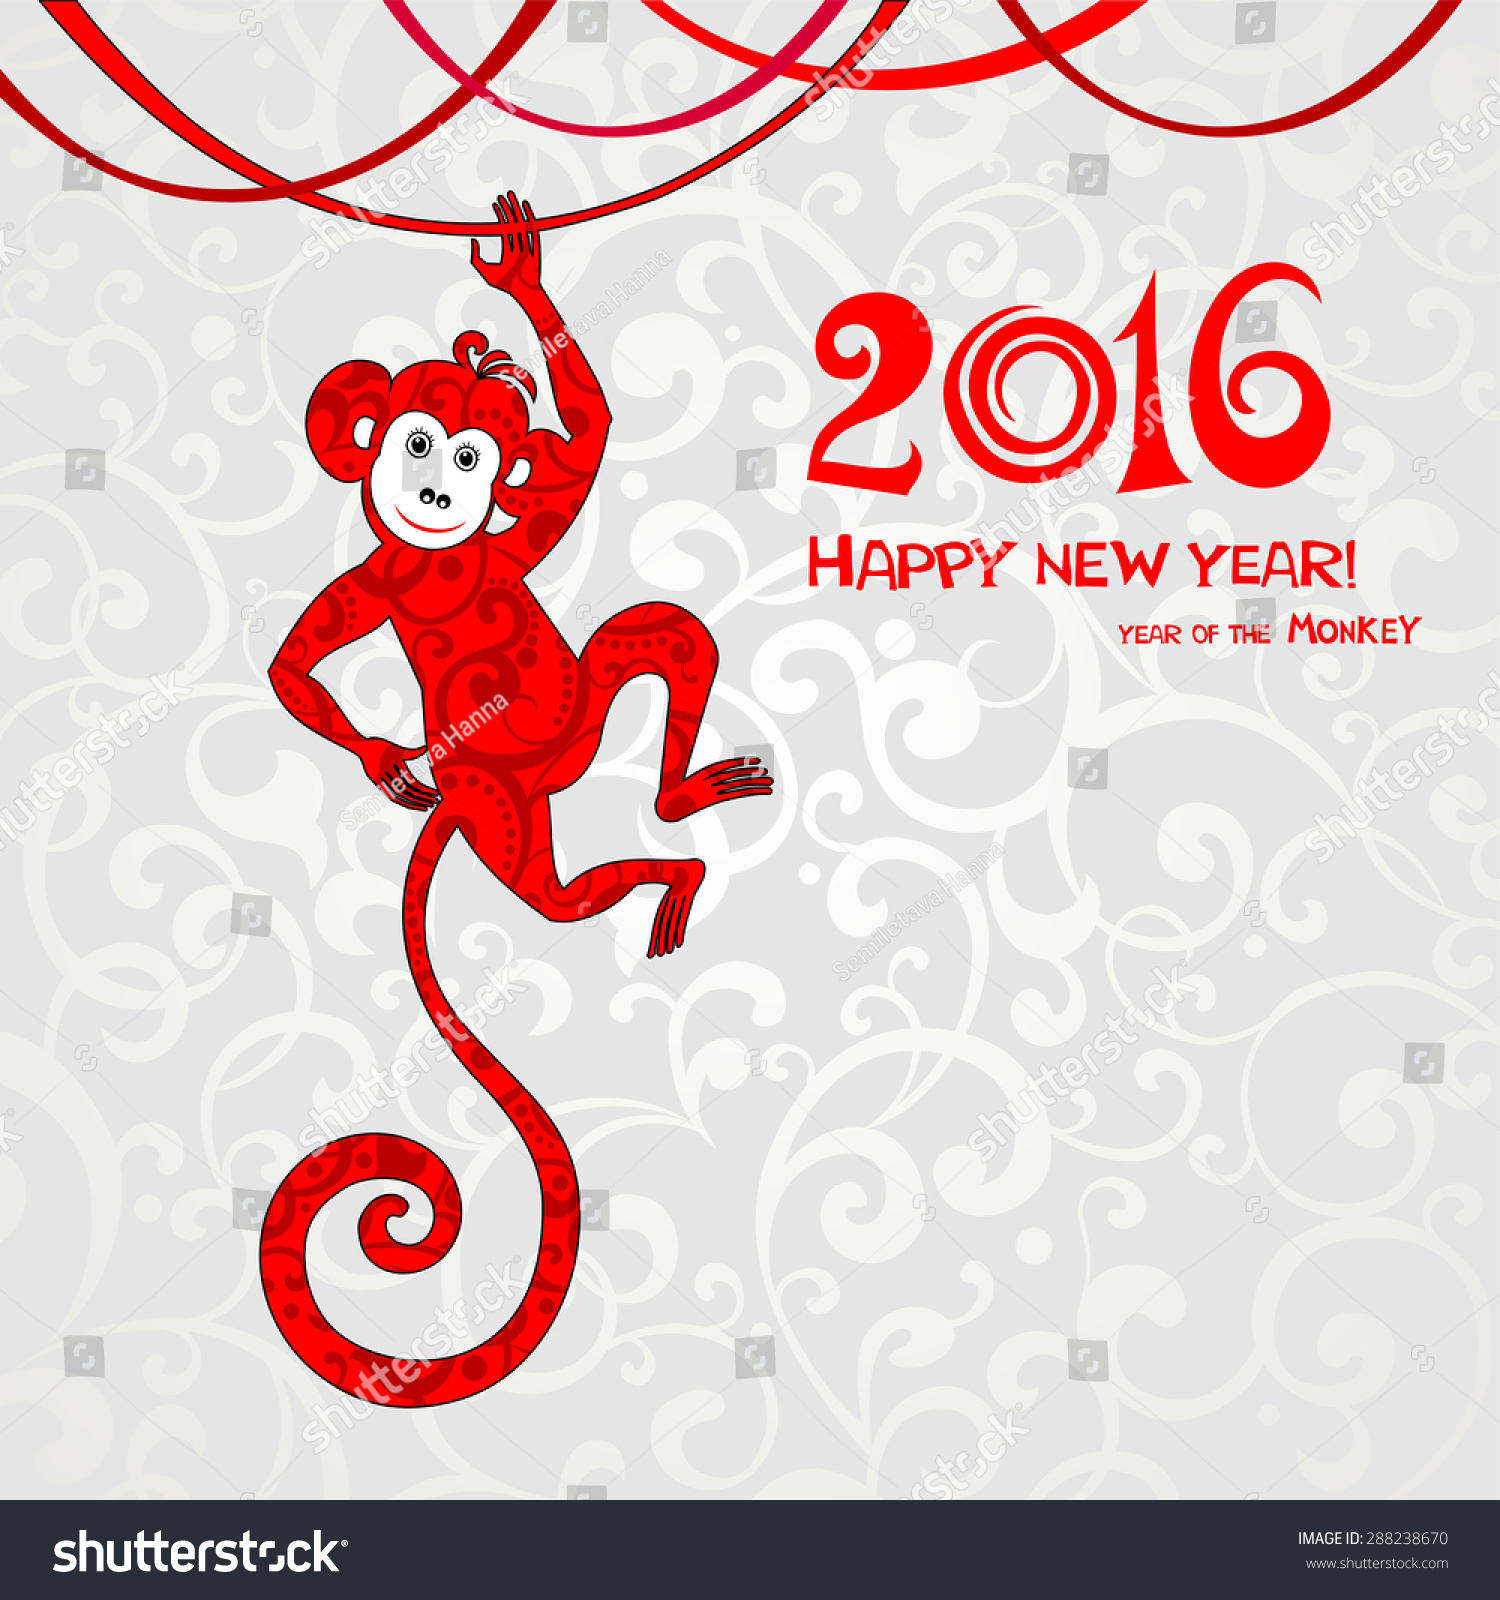 Happy new year 2016 Year Of The Monkey Vector Illustration